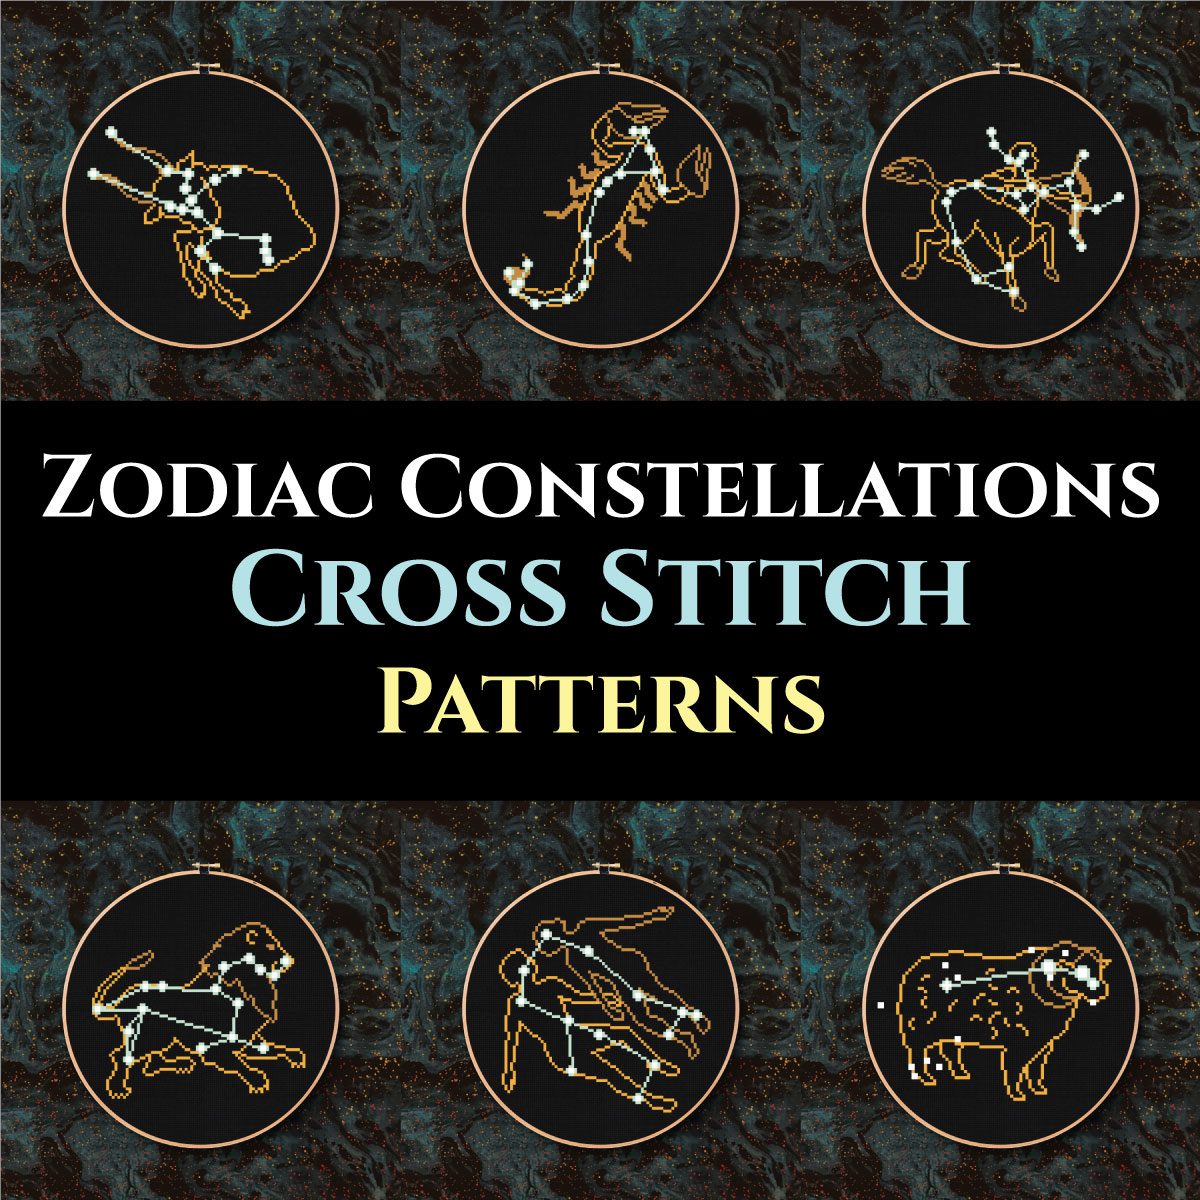 graphic about Printable Constellation Patterns identified as Zodiac Constellations Cross Sch 12 Amazing and Very simple